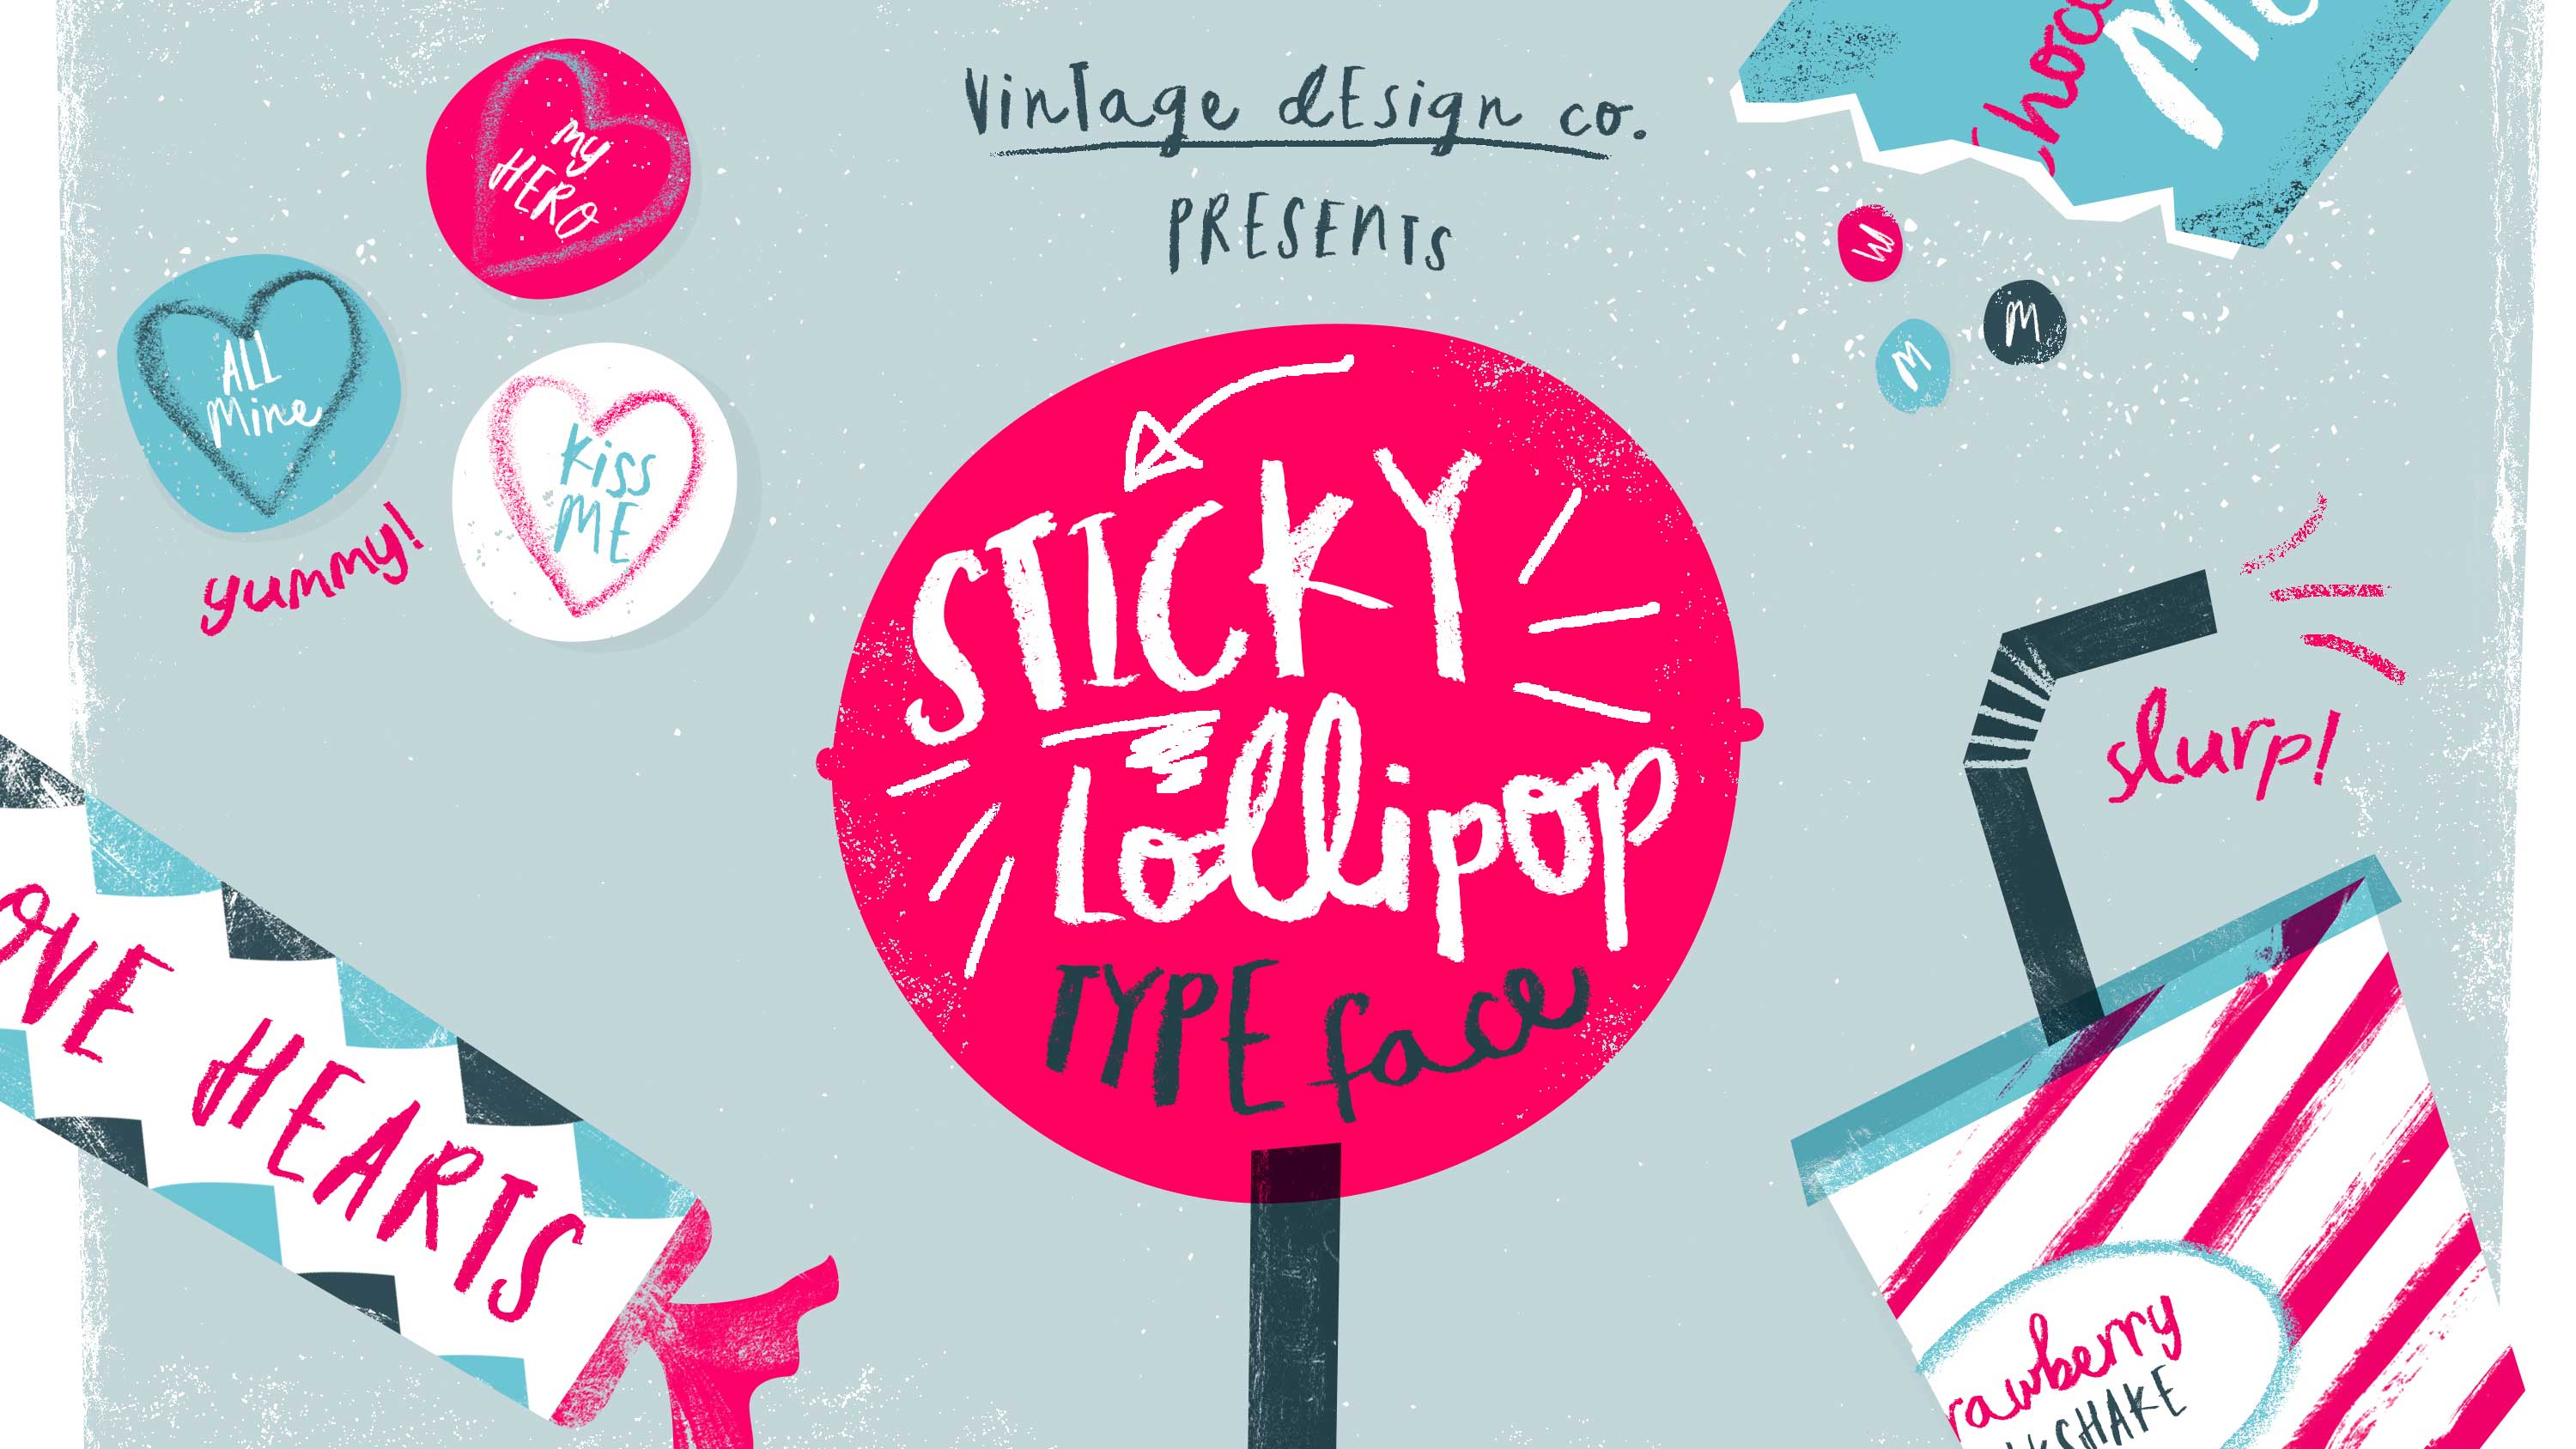 Best graphic design tools for May: Sticky Lollipop